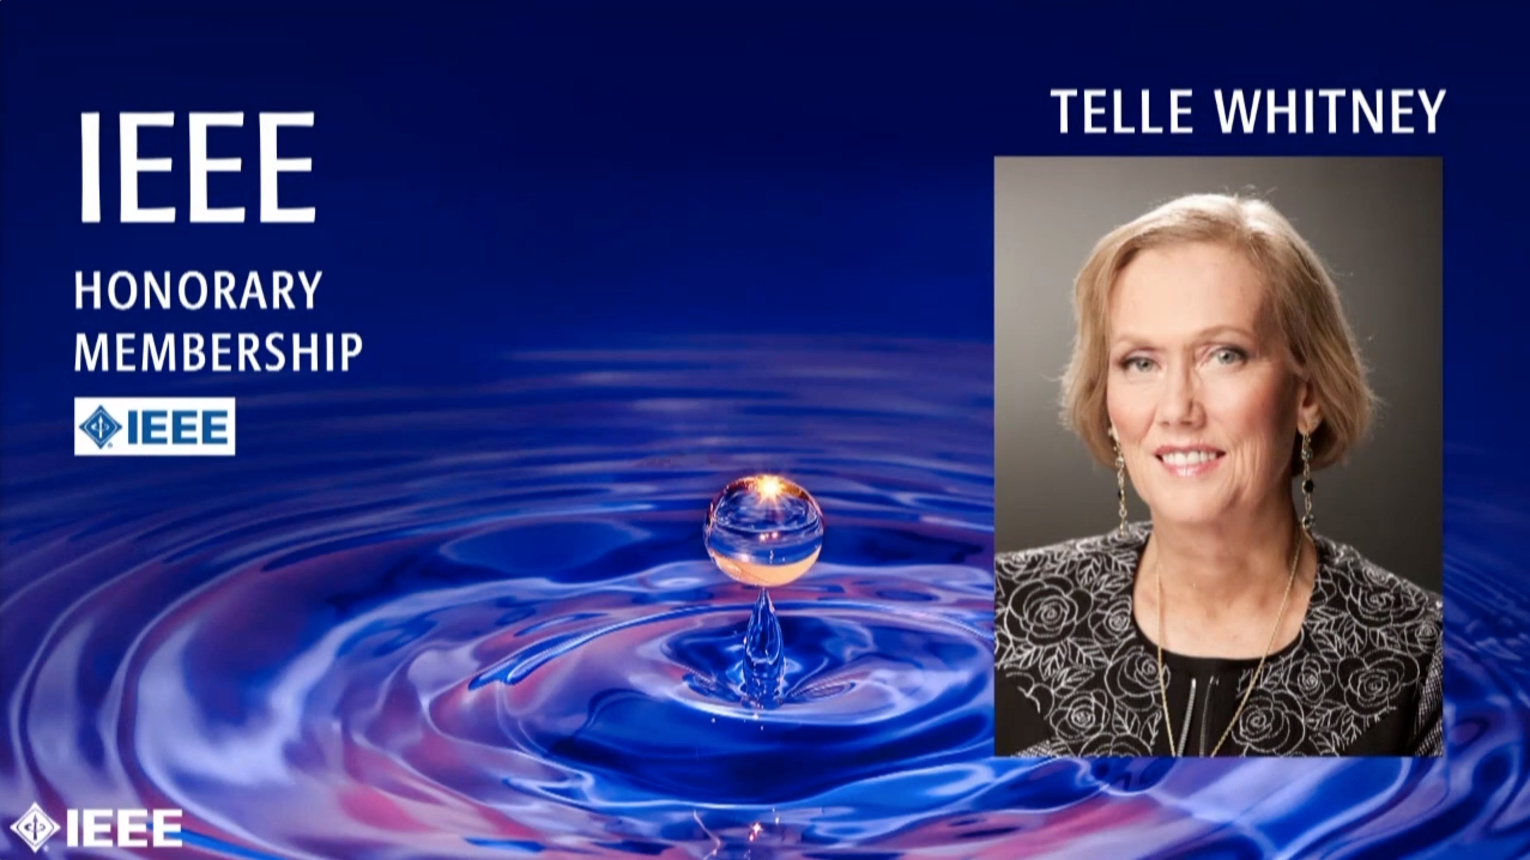 Telle Whitney - IEEE Honorary Membership, 2019 IEEE Honors Ceremony